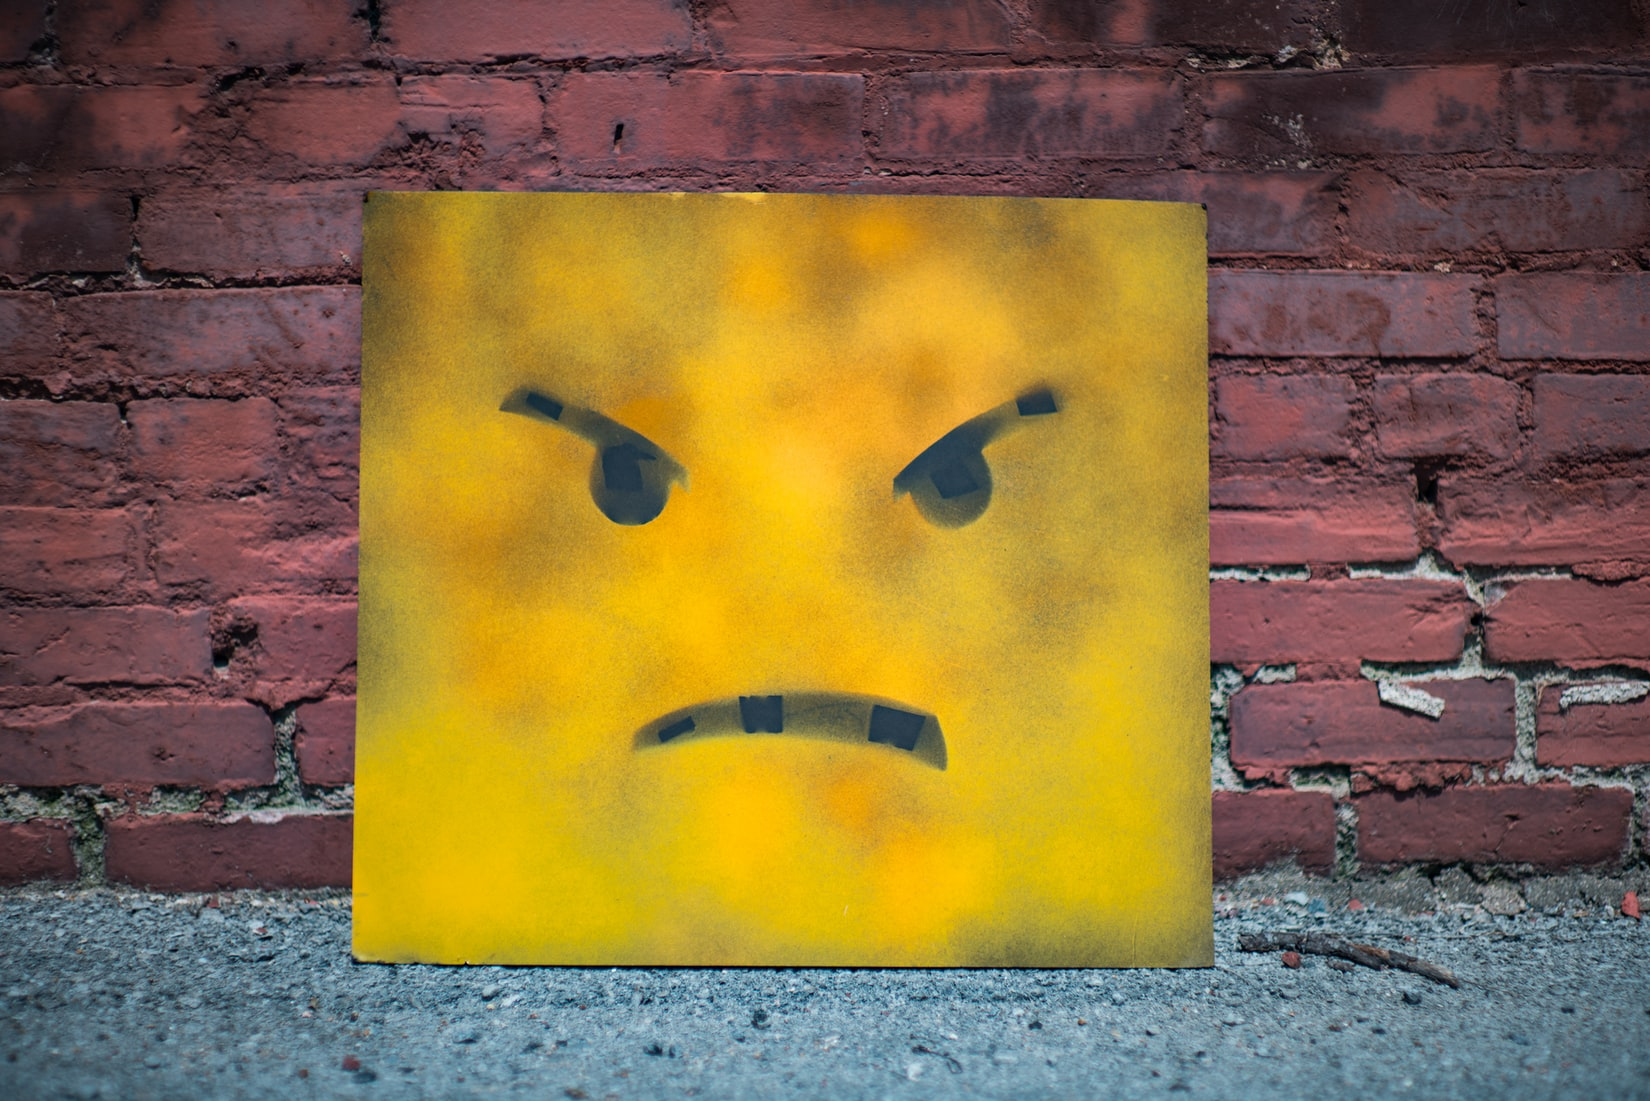 Angry yellow and black smiley wall art against red brick wall